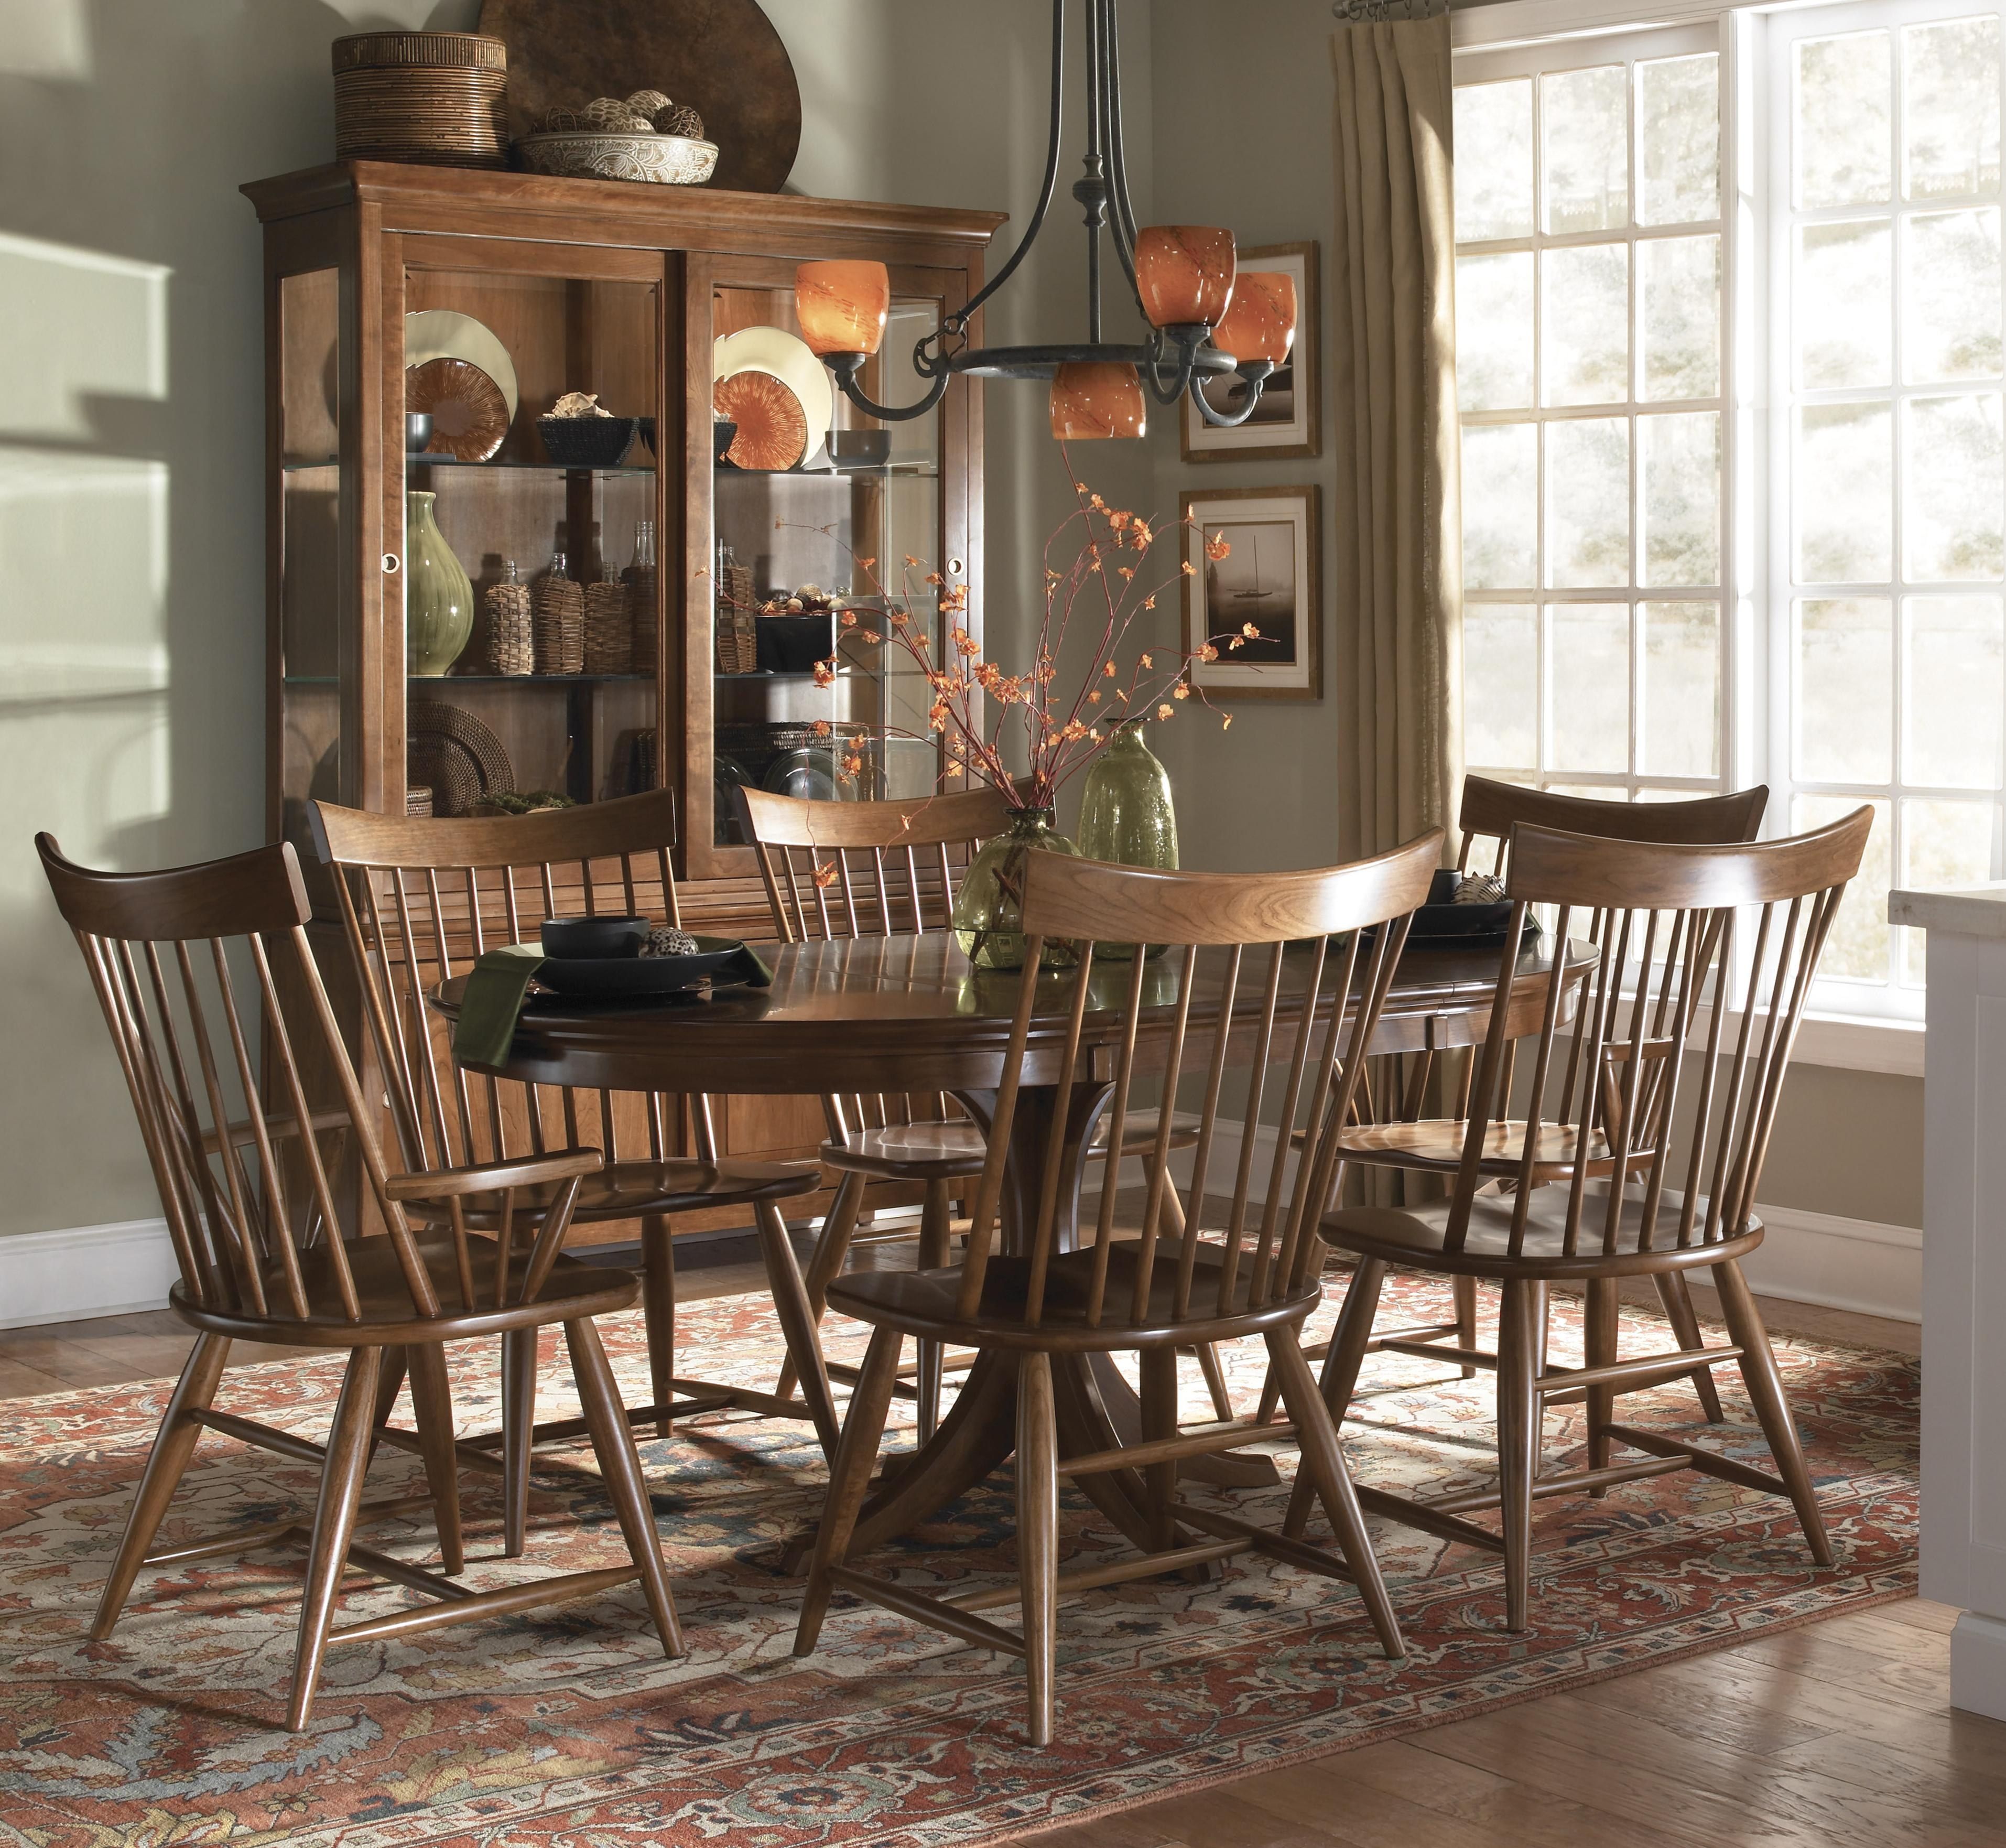 Kincaid Furniture Cherry Park Seven Piece Round Dining Table U0026 Windsor  Chair Set   AHFA   Dining 7 (or More) Piece Set Dealer Locator